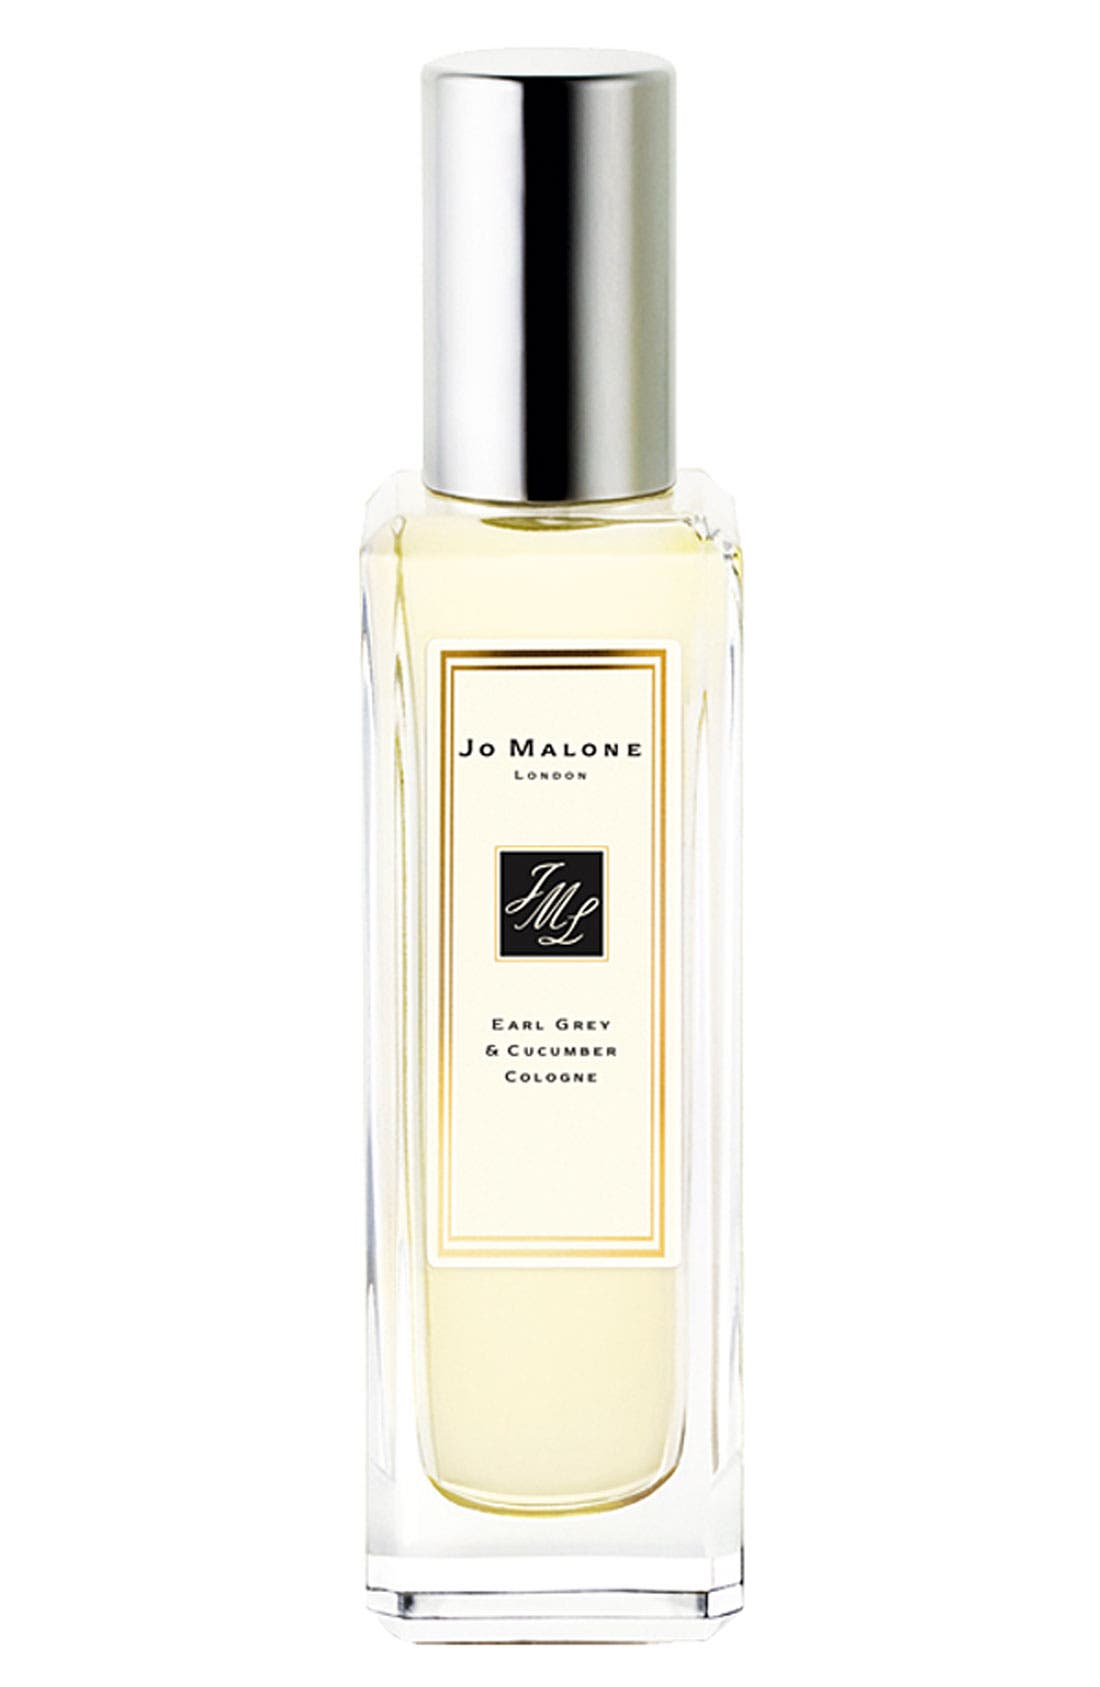 Jo Malone London™ Tea Fragrance Blends Earl Grey & Cucumber Cologne